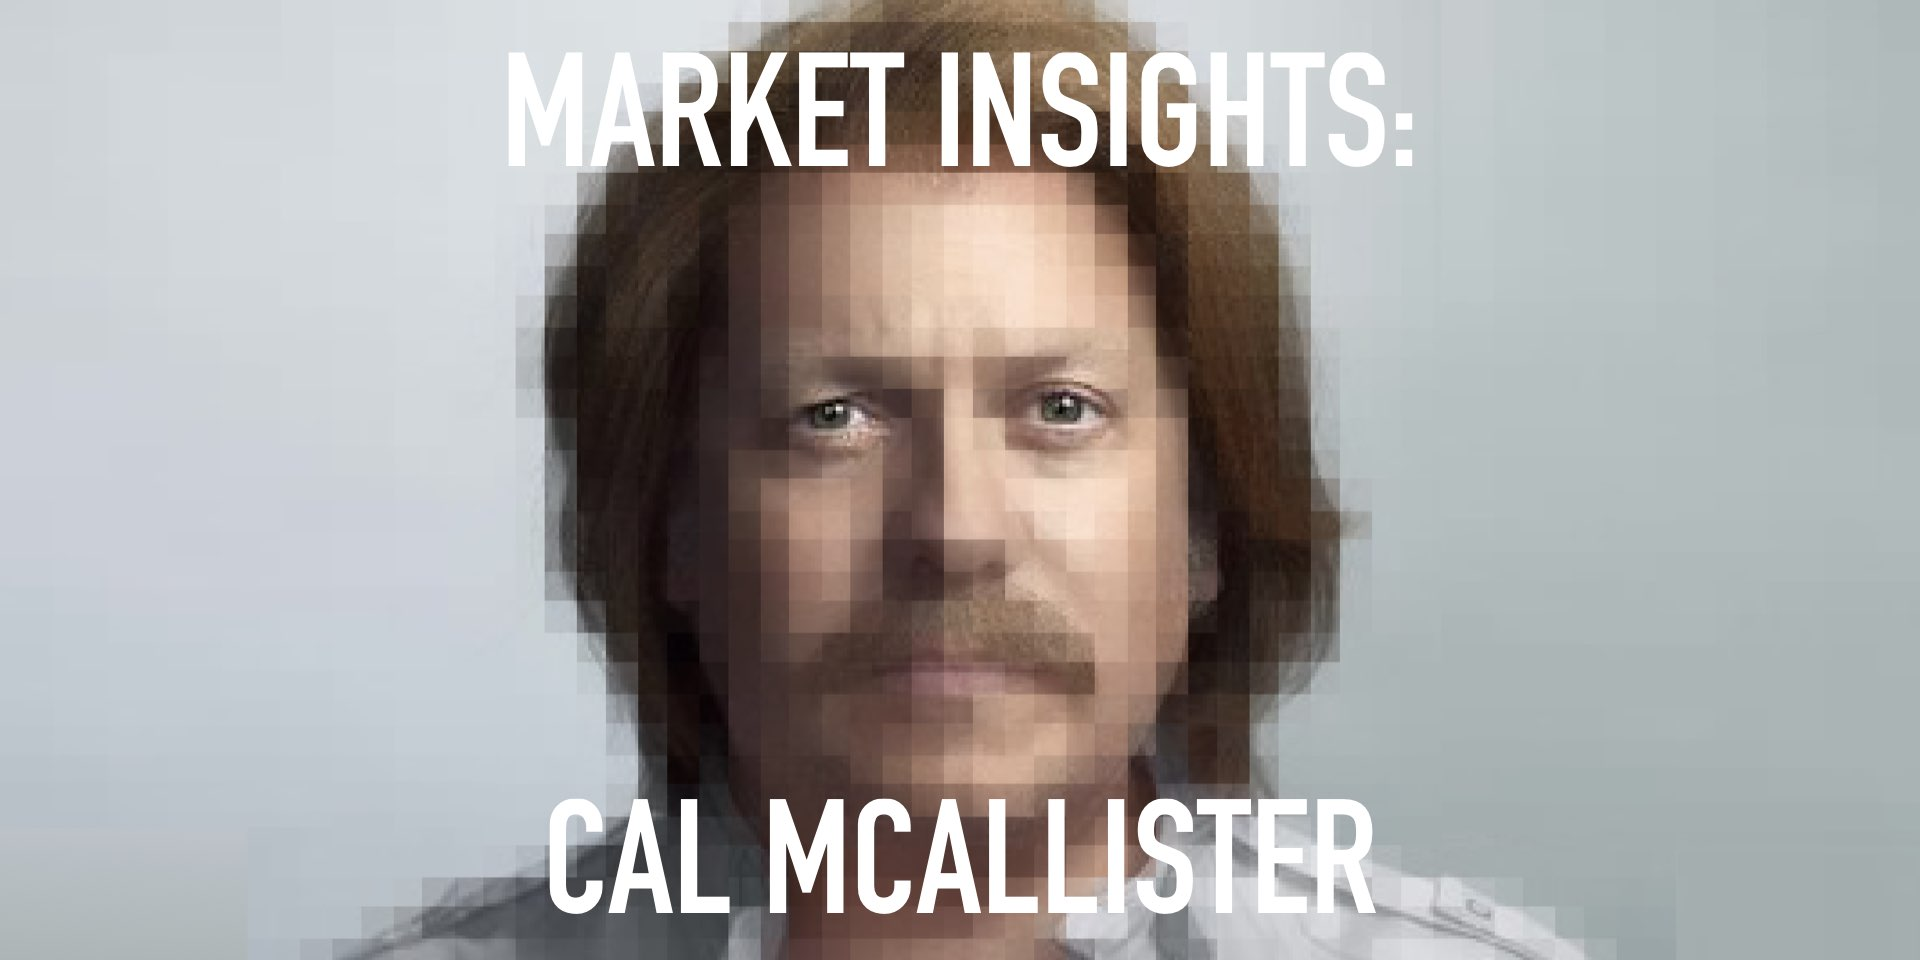 Market Insights: Cal McAlister